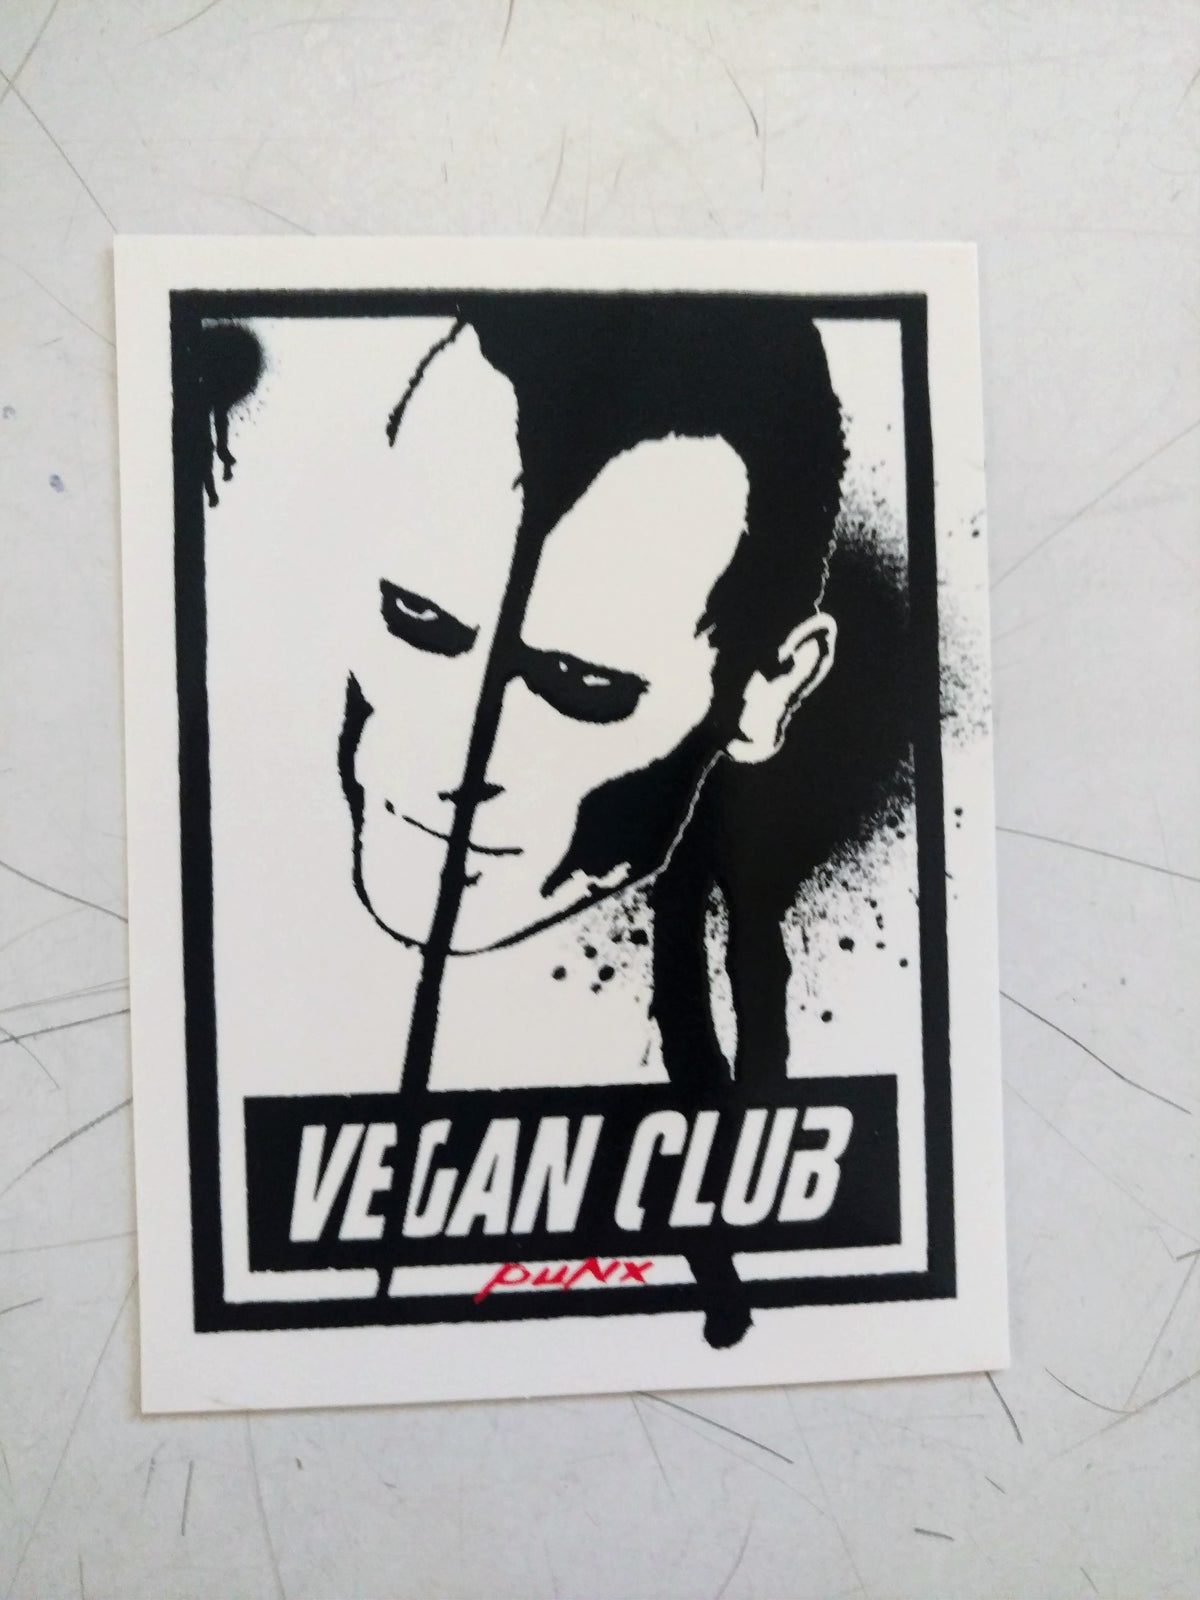 SOLD OUT - Vegan Club Stickers with Doyle Wolfgang collab with Anthony Proetta Jr  - Set of 12